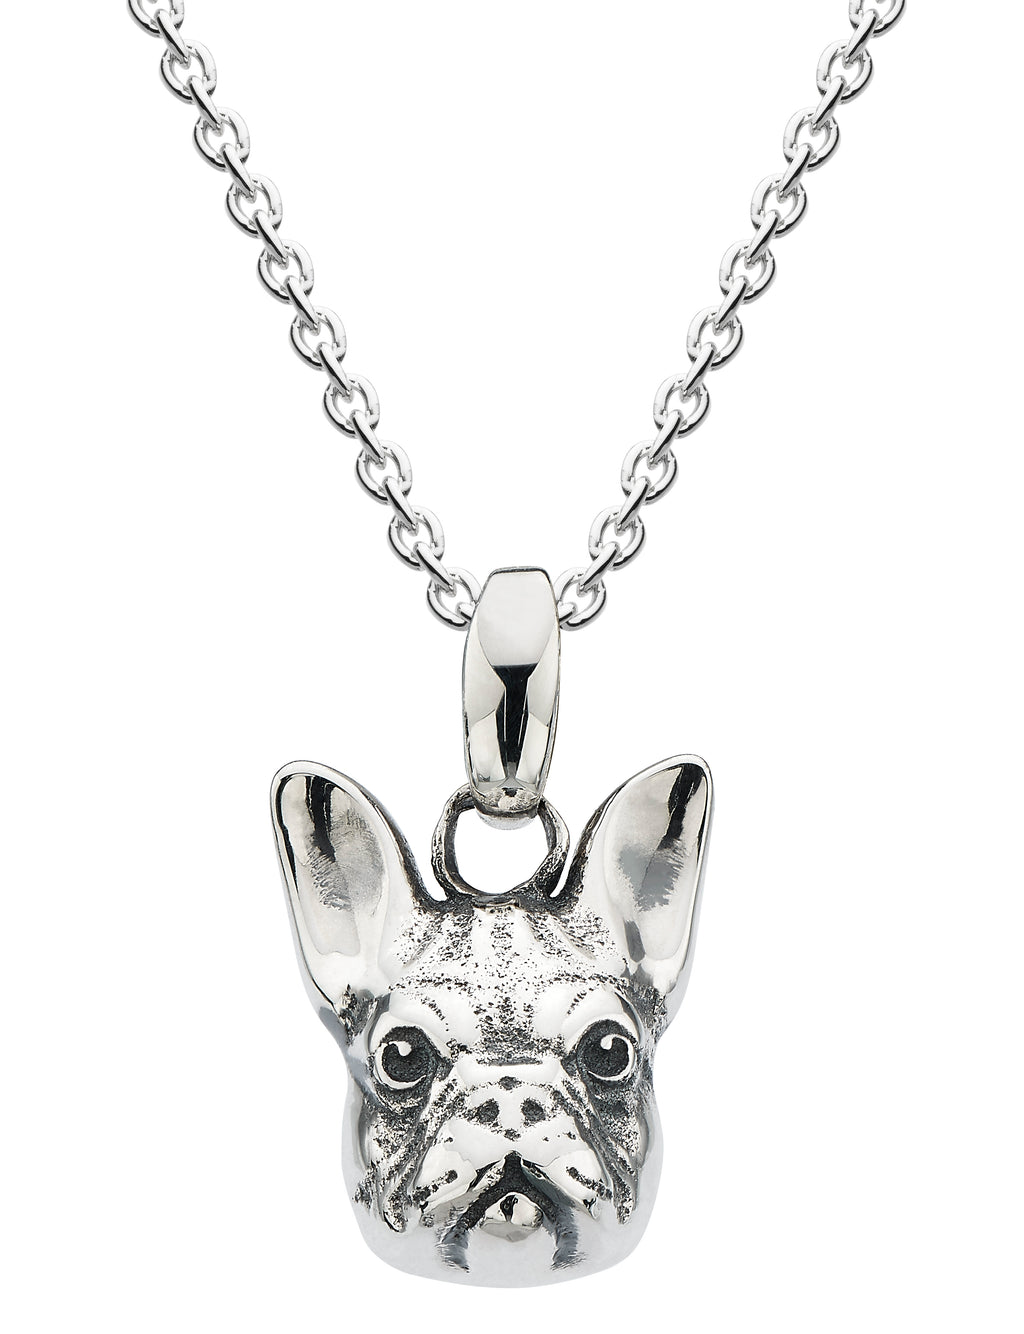 French Bull dog head pendant on chain